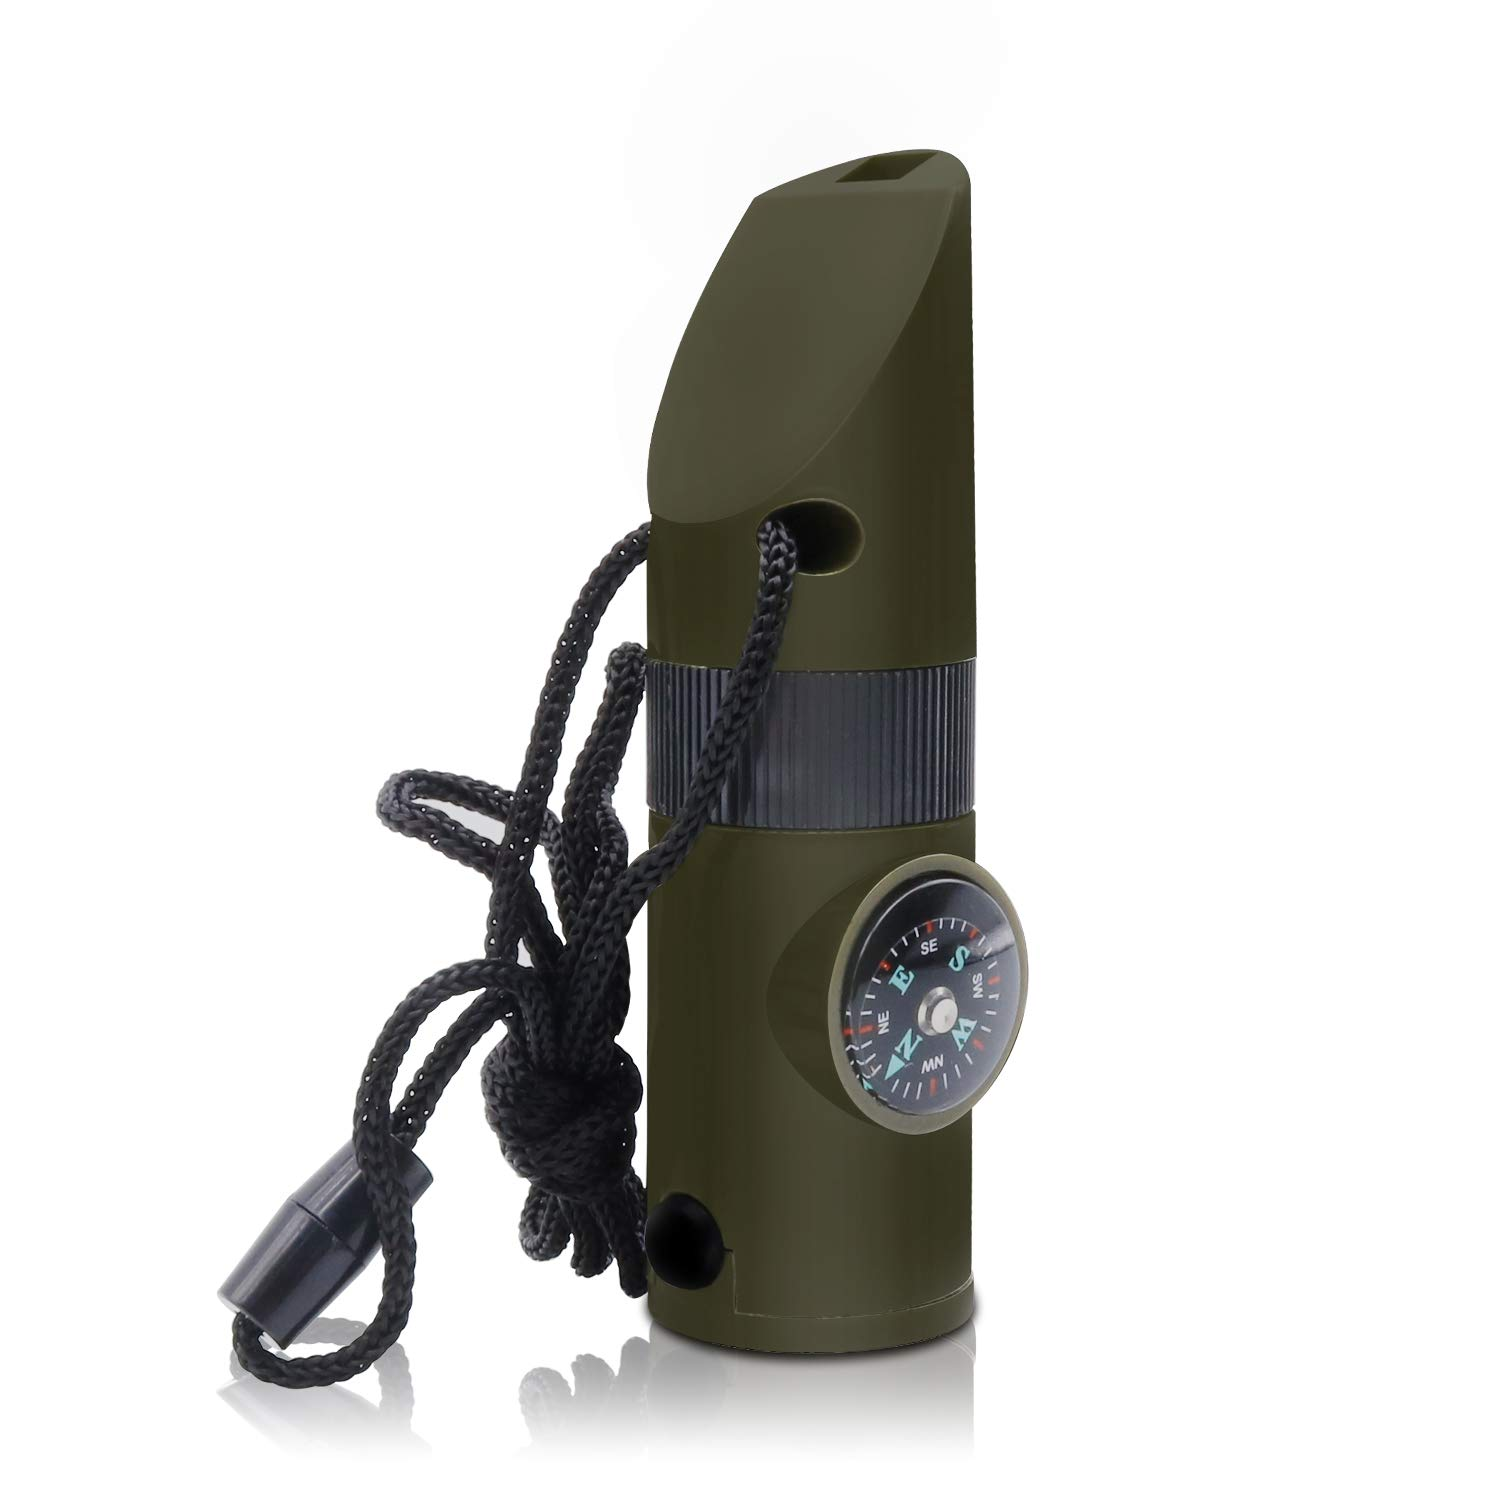 TRENDBOX Multifunctional Magnifier Flashlight Thermometer